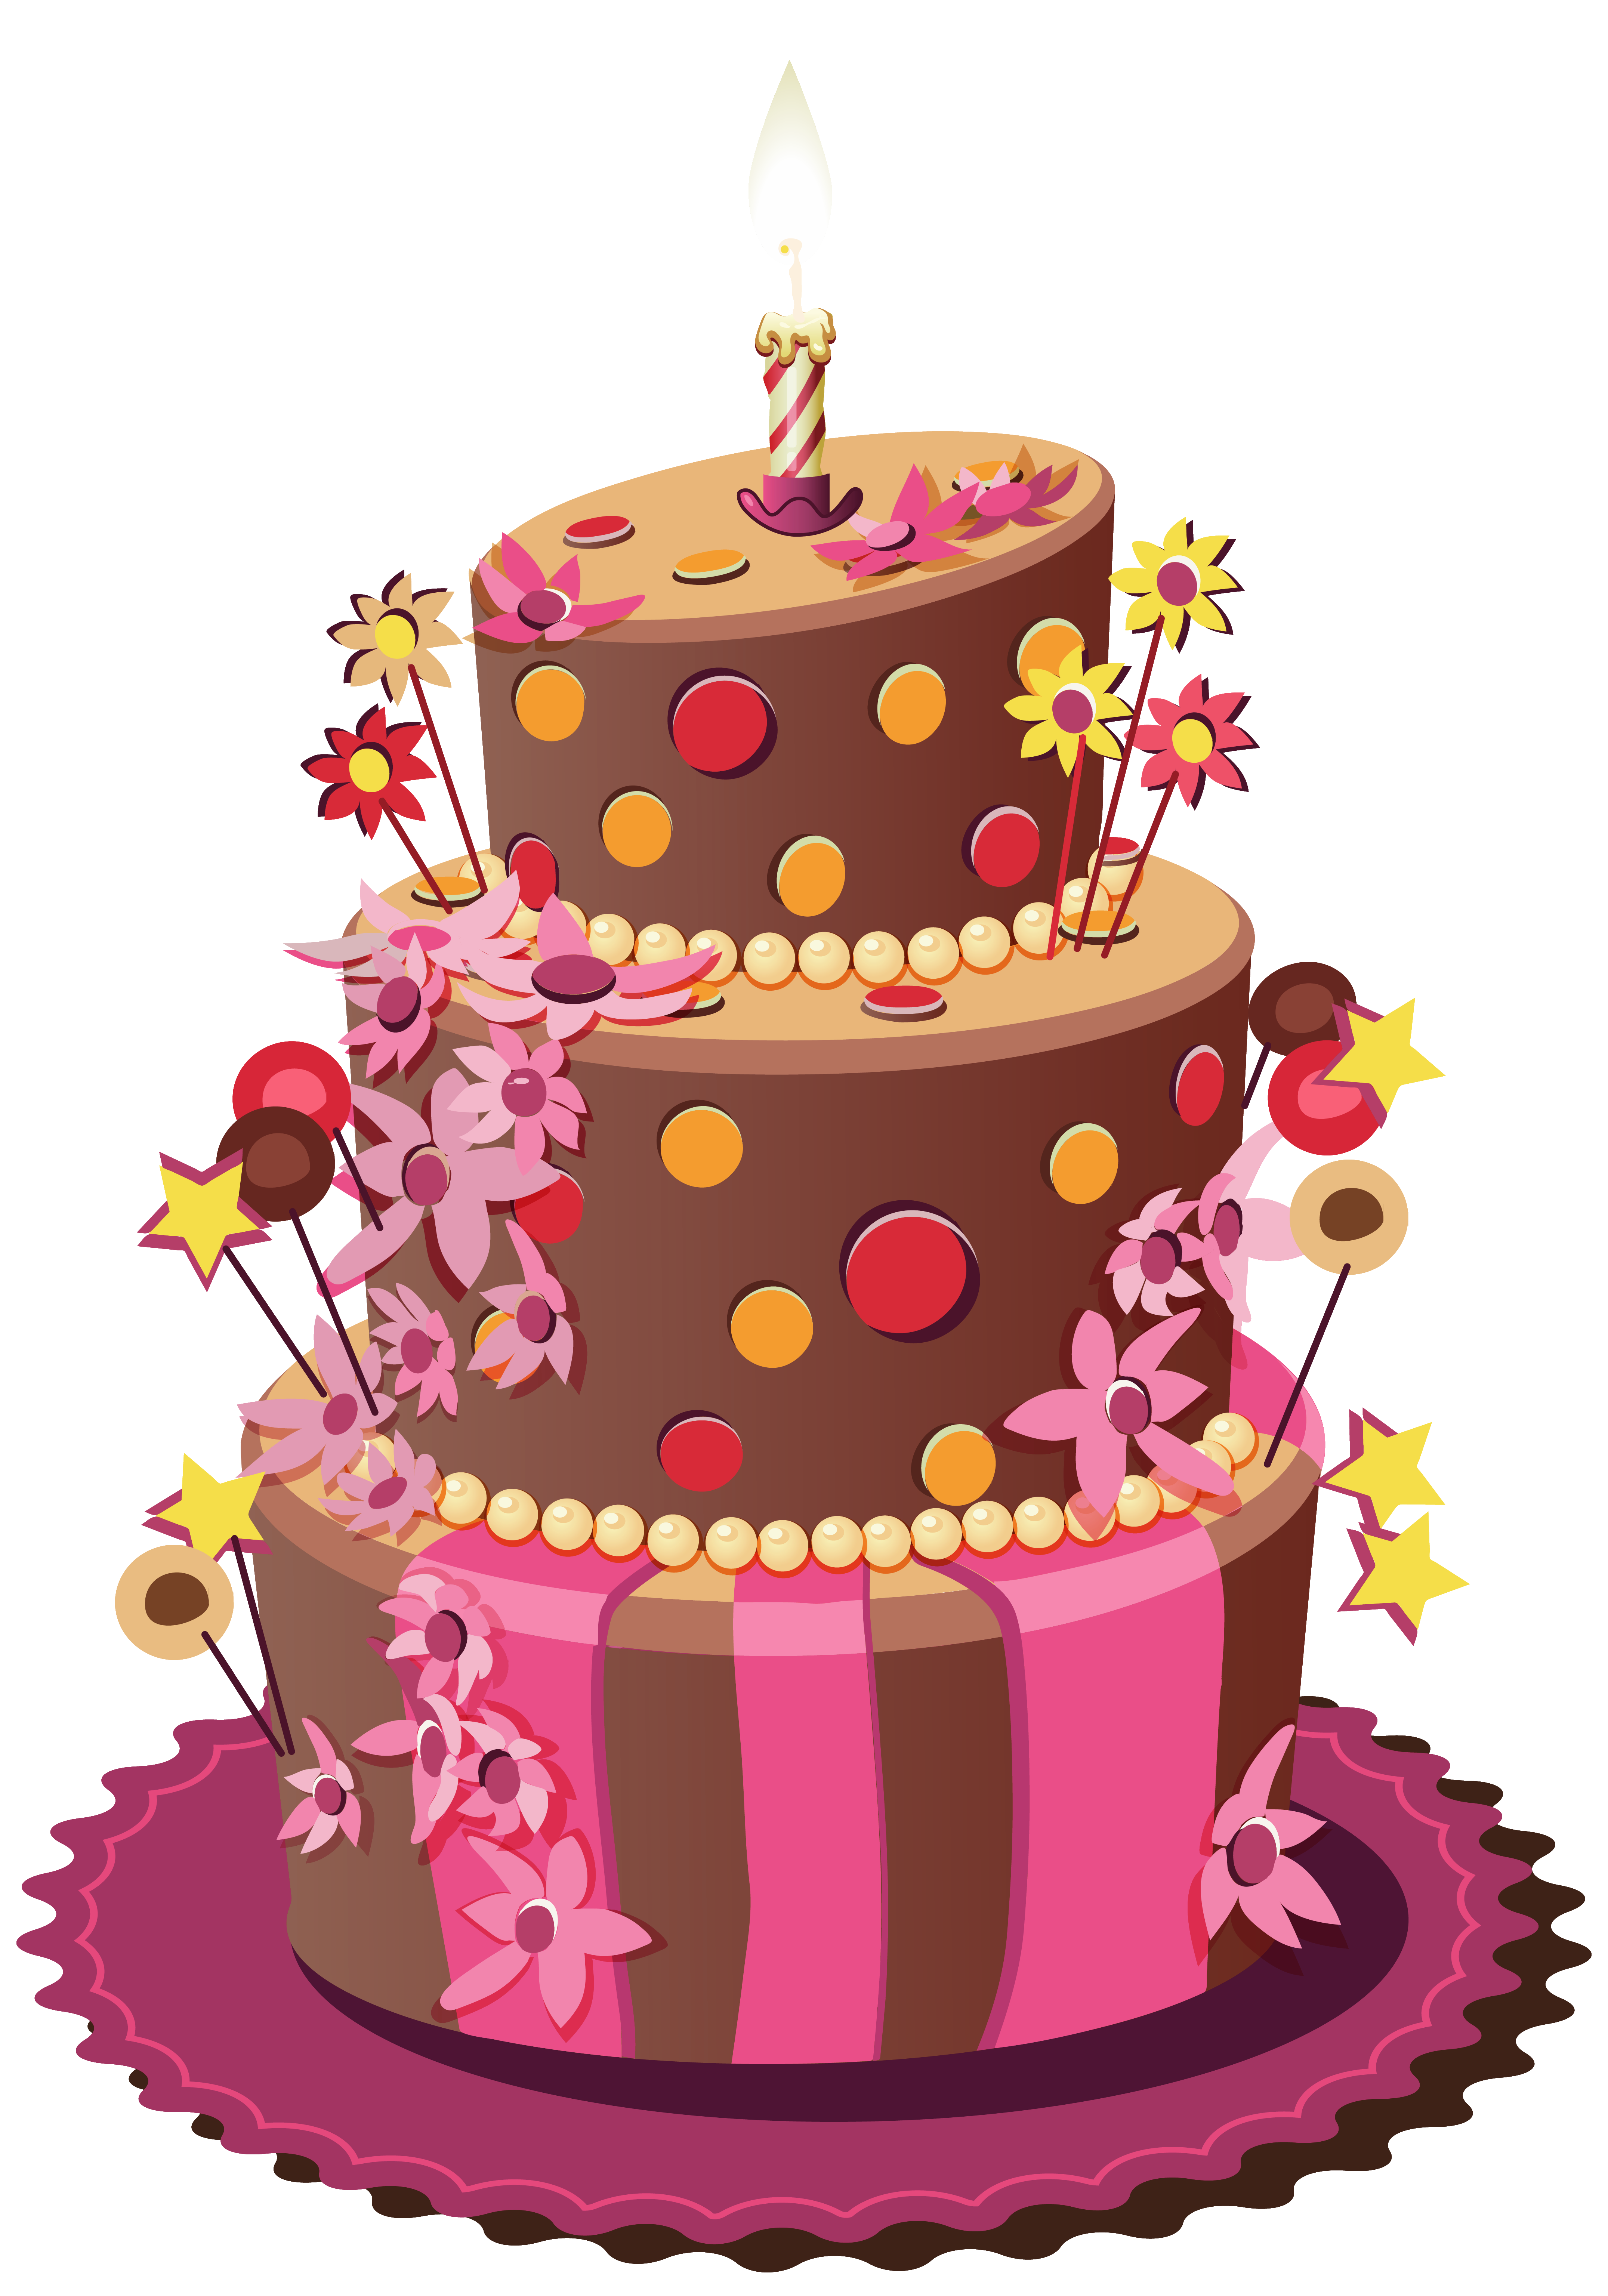 Pin by DLPNG on cake png images.